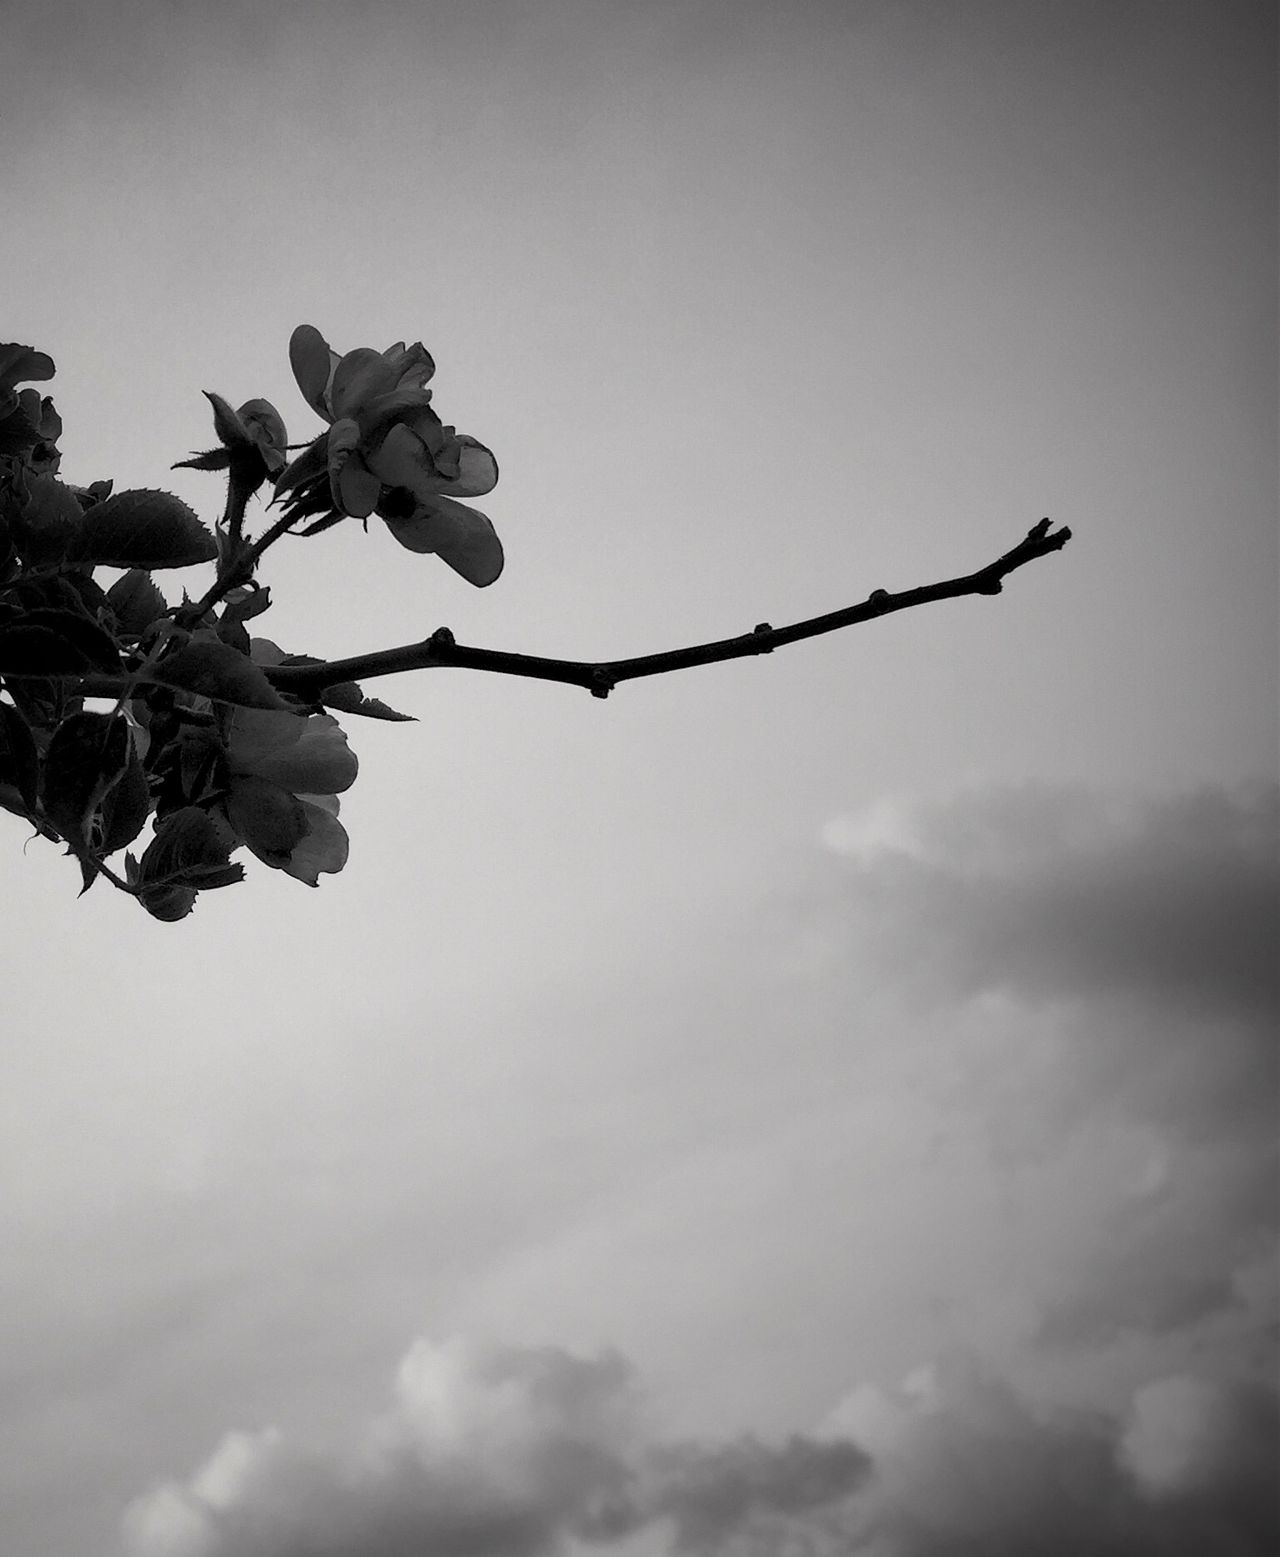 EyeEm Nature Lover Iphone6plus Blackandwhite Roses Nature IPSBlackWhite Silhouette Taking Photos Check This Out Flowers